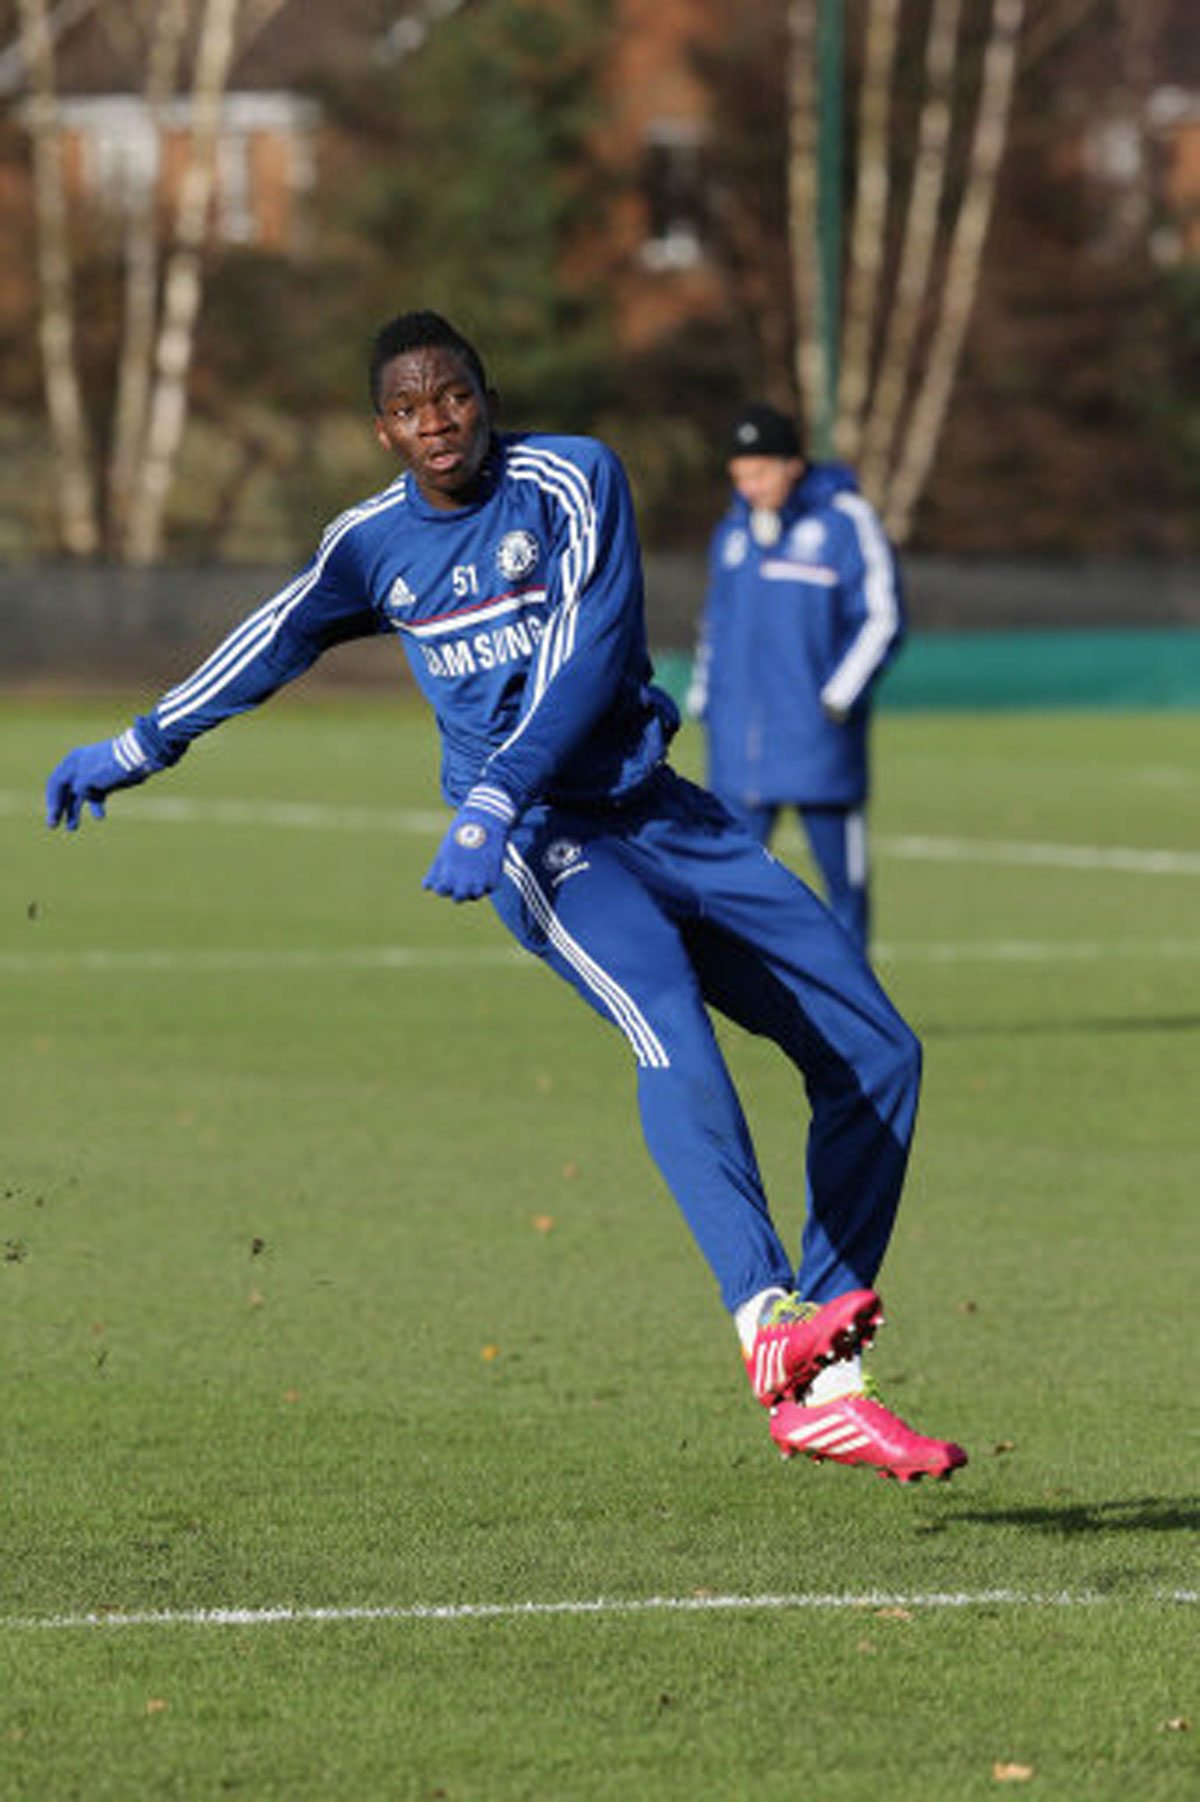 TALENT SHOW TRIAL: Kenneth Omeruo's career began with an open trial for Nigeria's Under-17s World Cup squad